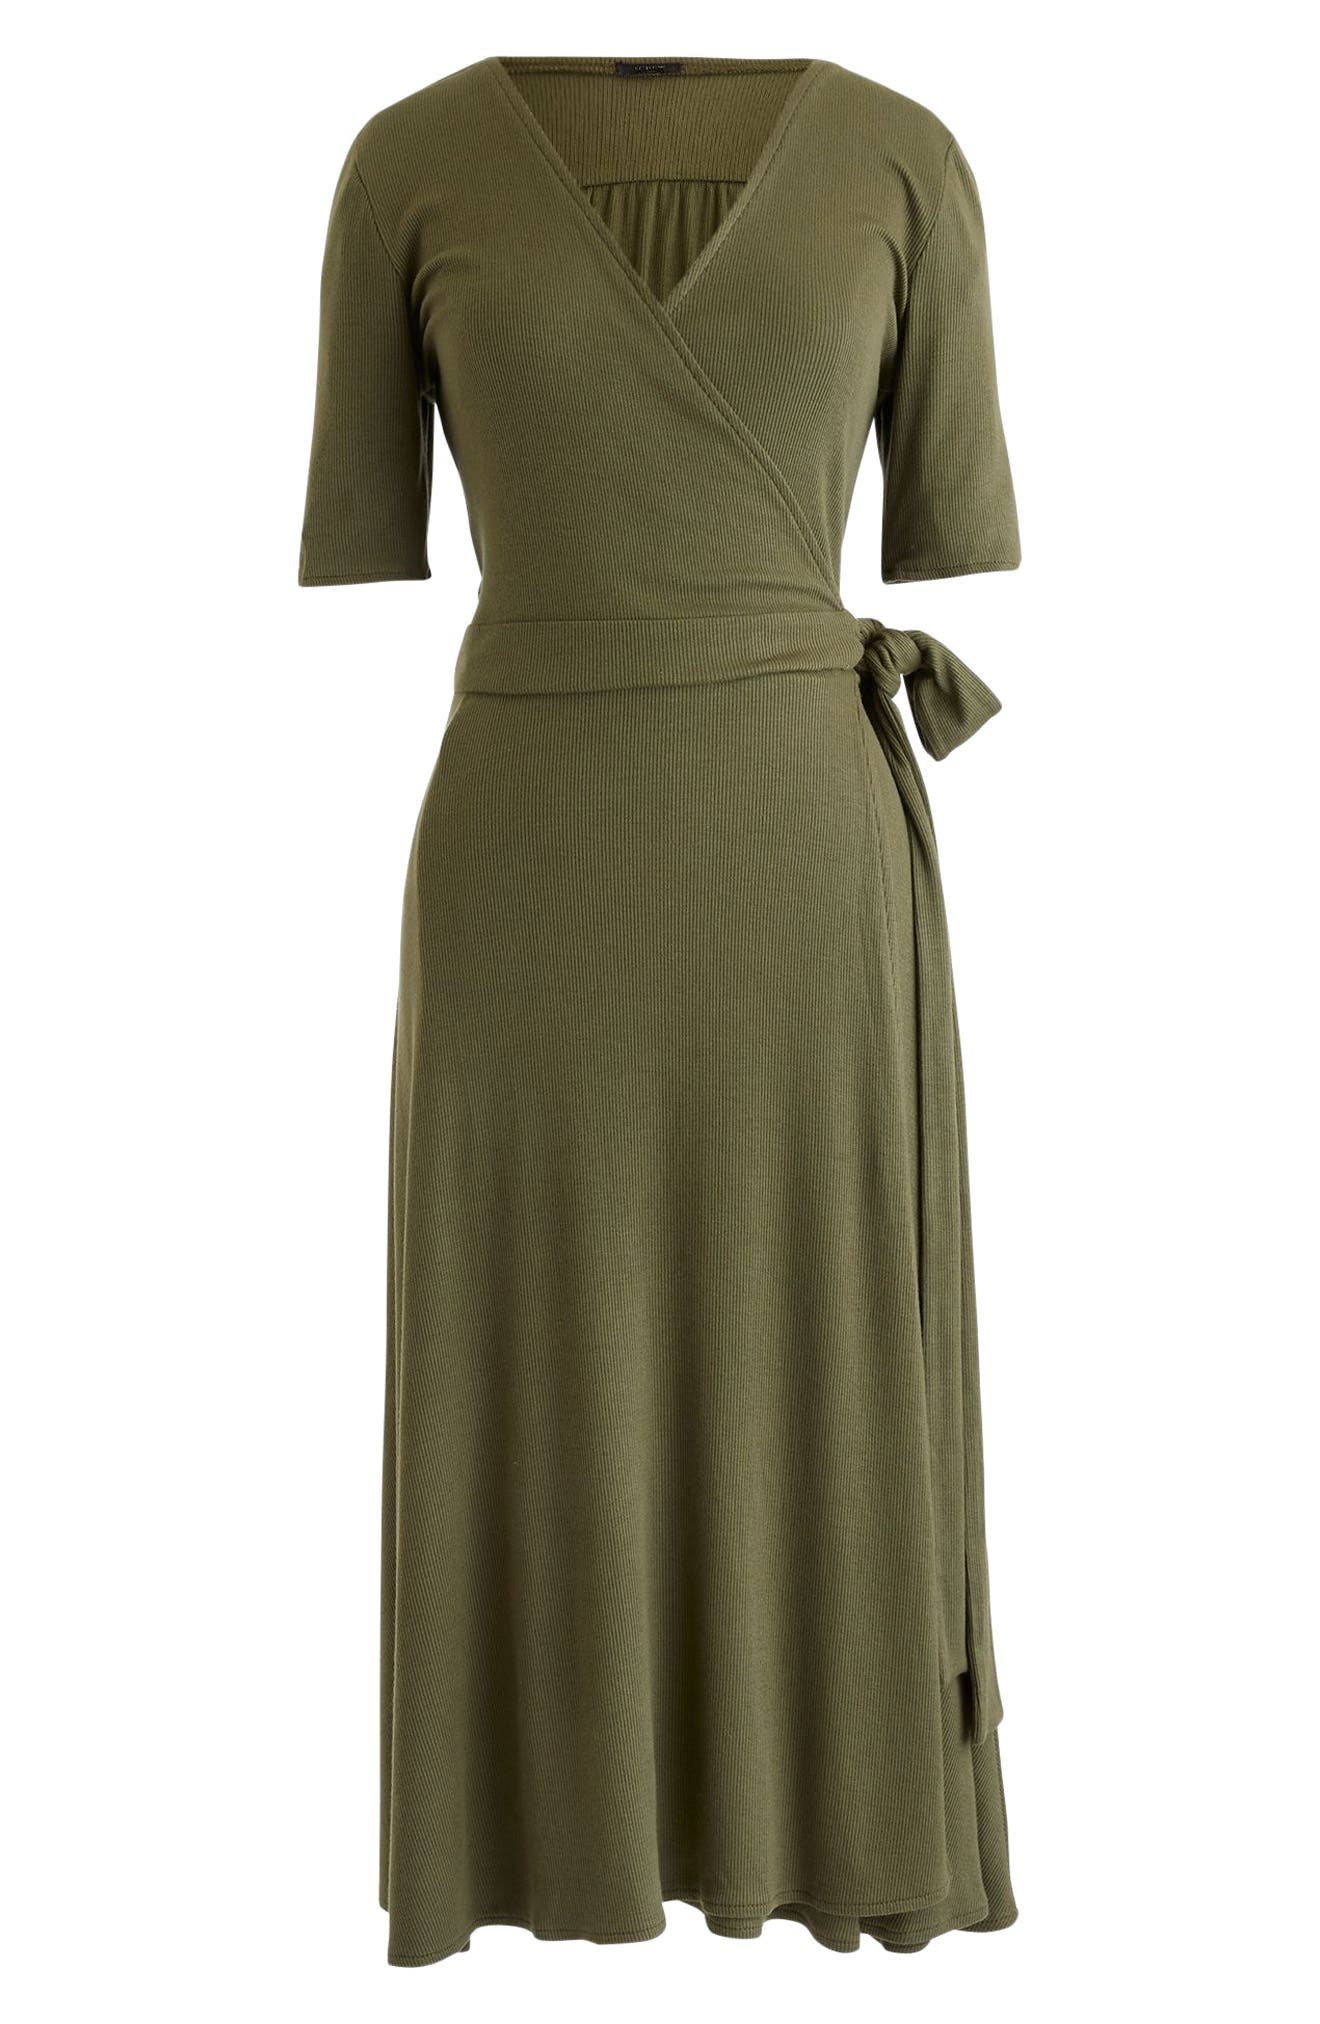 J.Crew Knit Wrap Dress,                             Main thumbnail 1, color,                             Frosty Olive